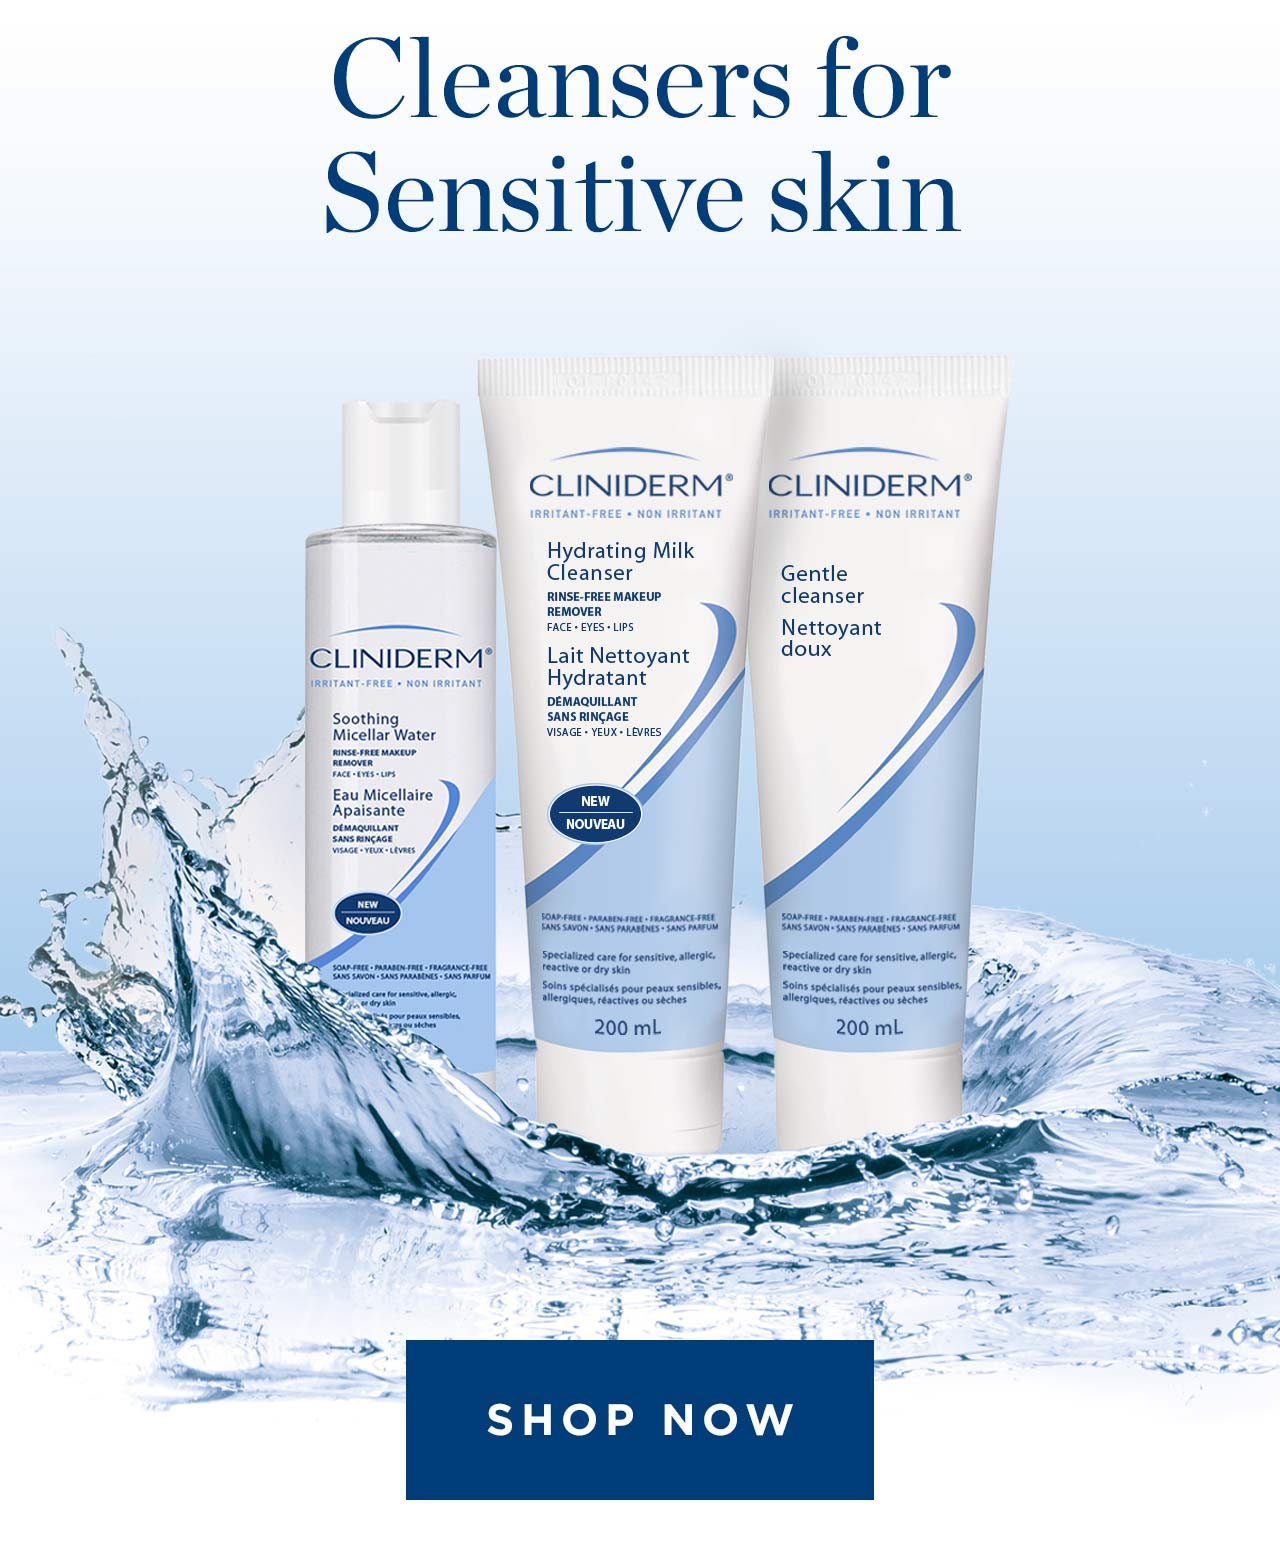 Cleansers for Sensitive Skin Shop Now